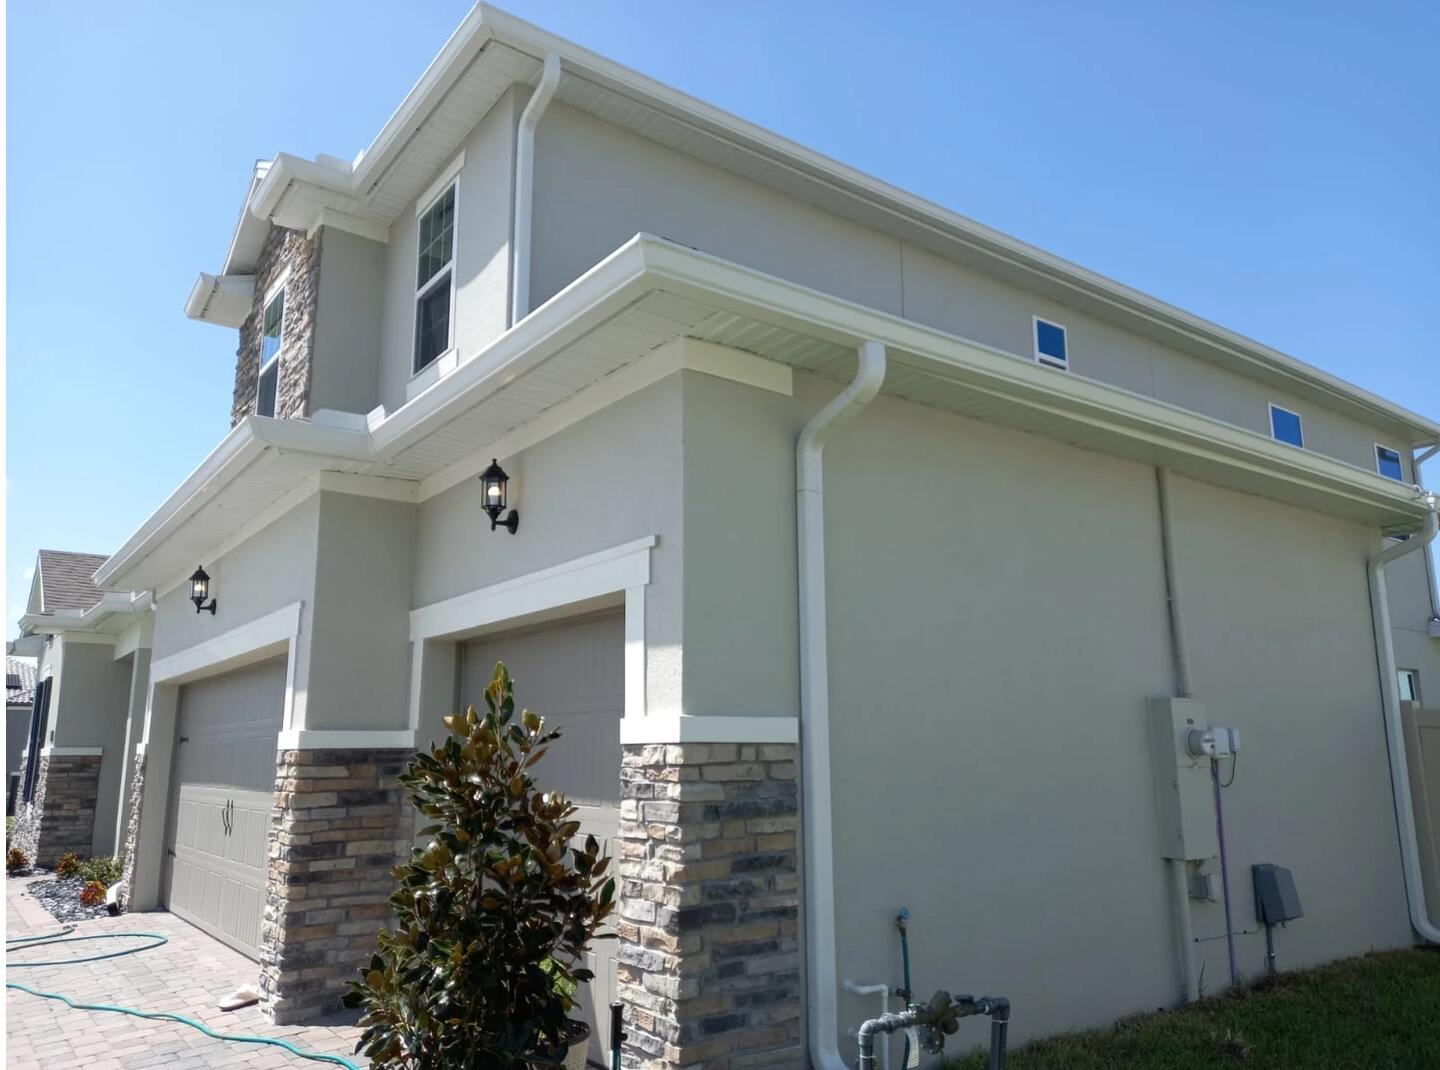 Why You Should Choose the K-Style Gutter?